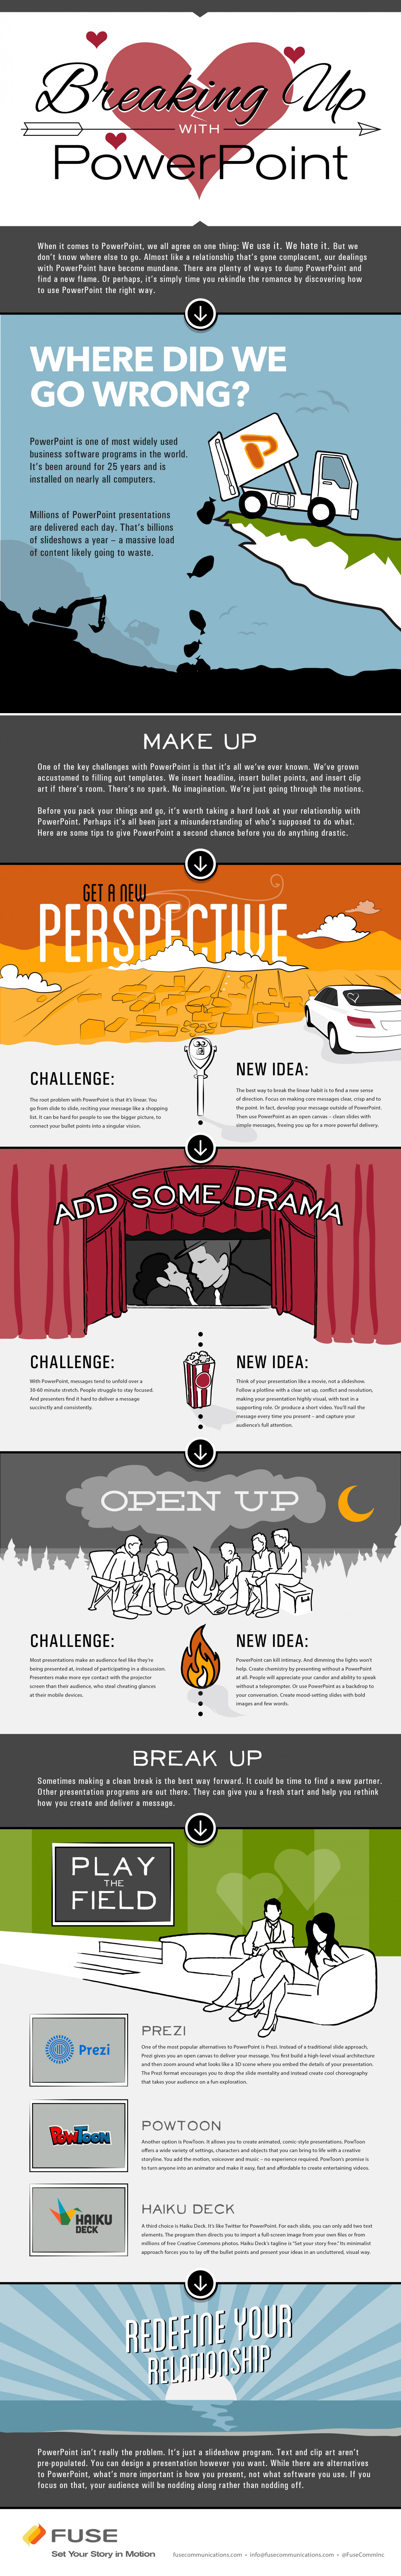 Breaking Up With Power Point Infographic